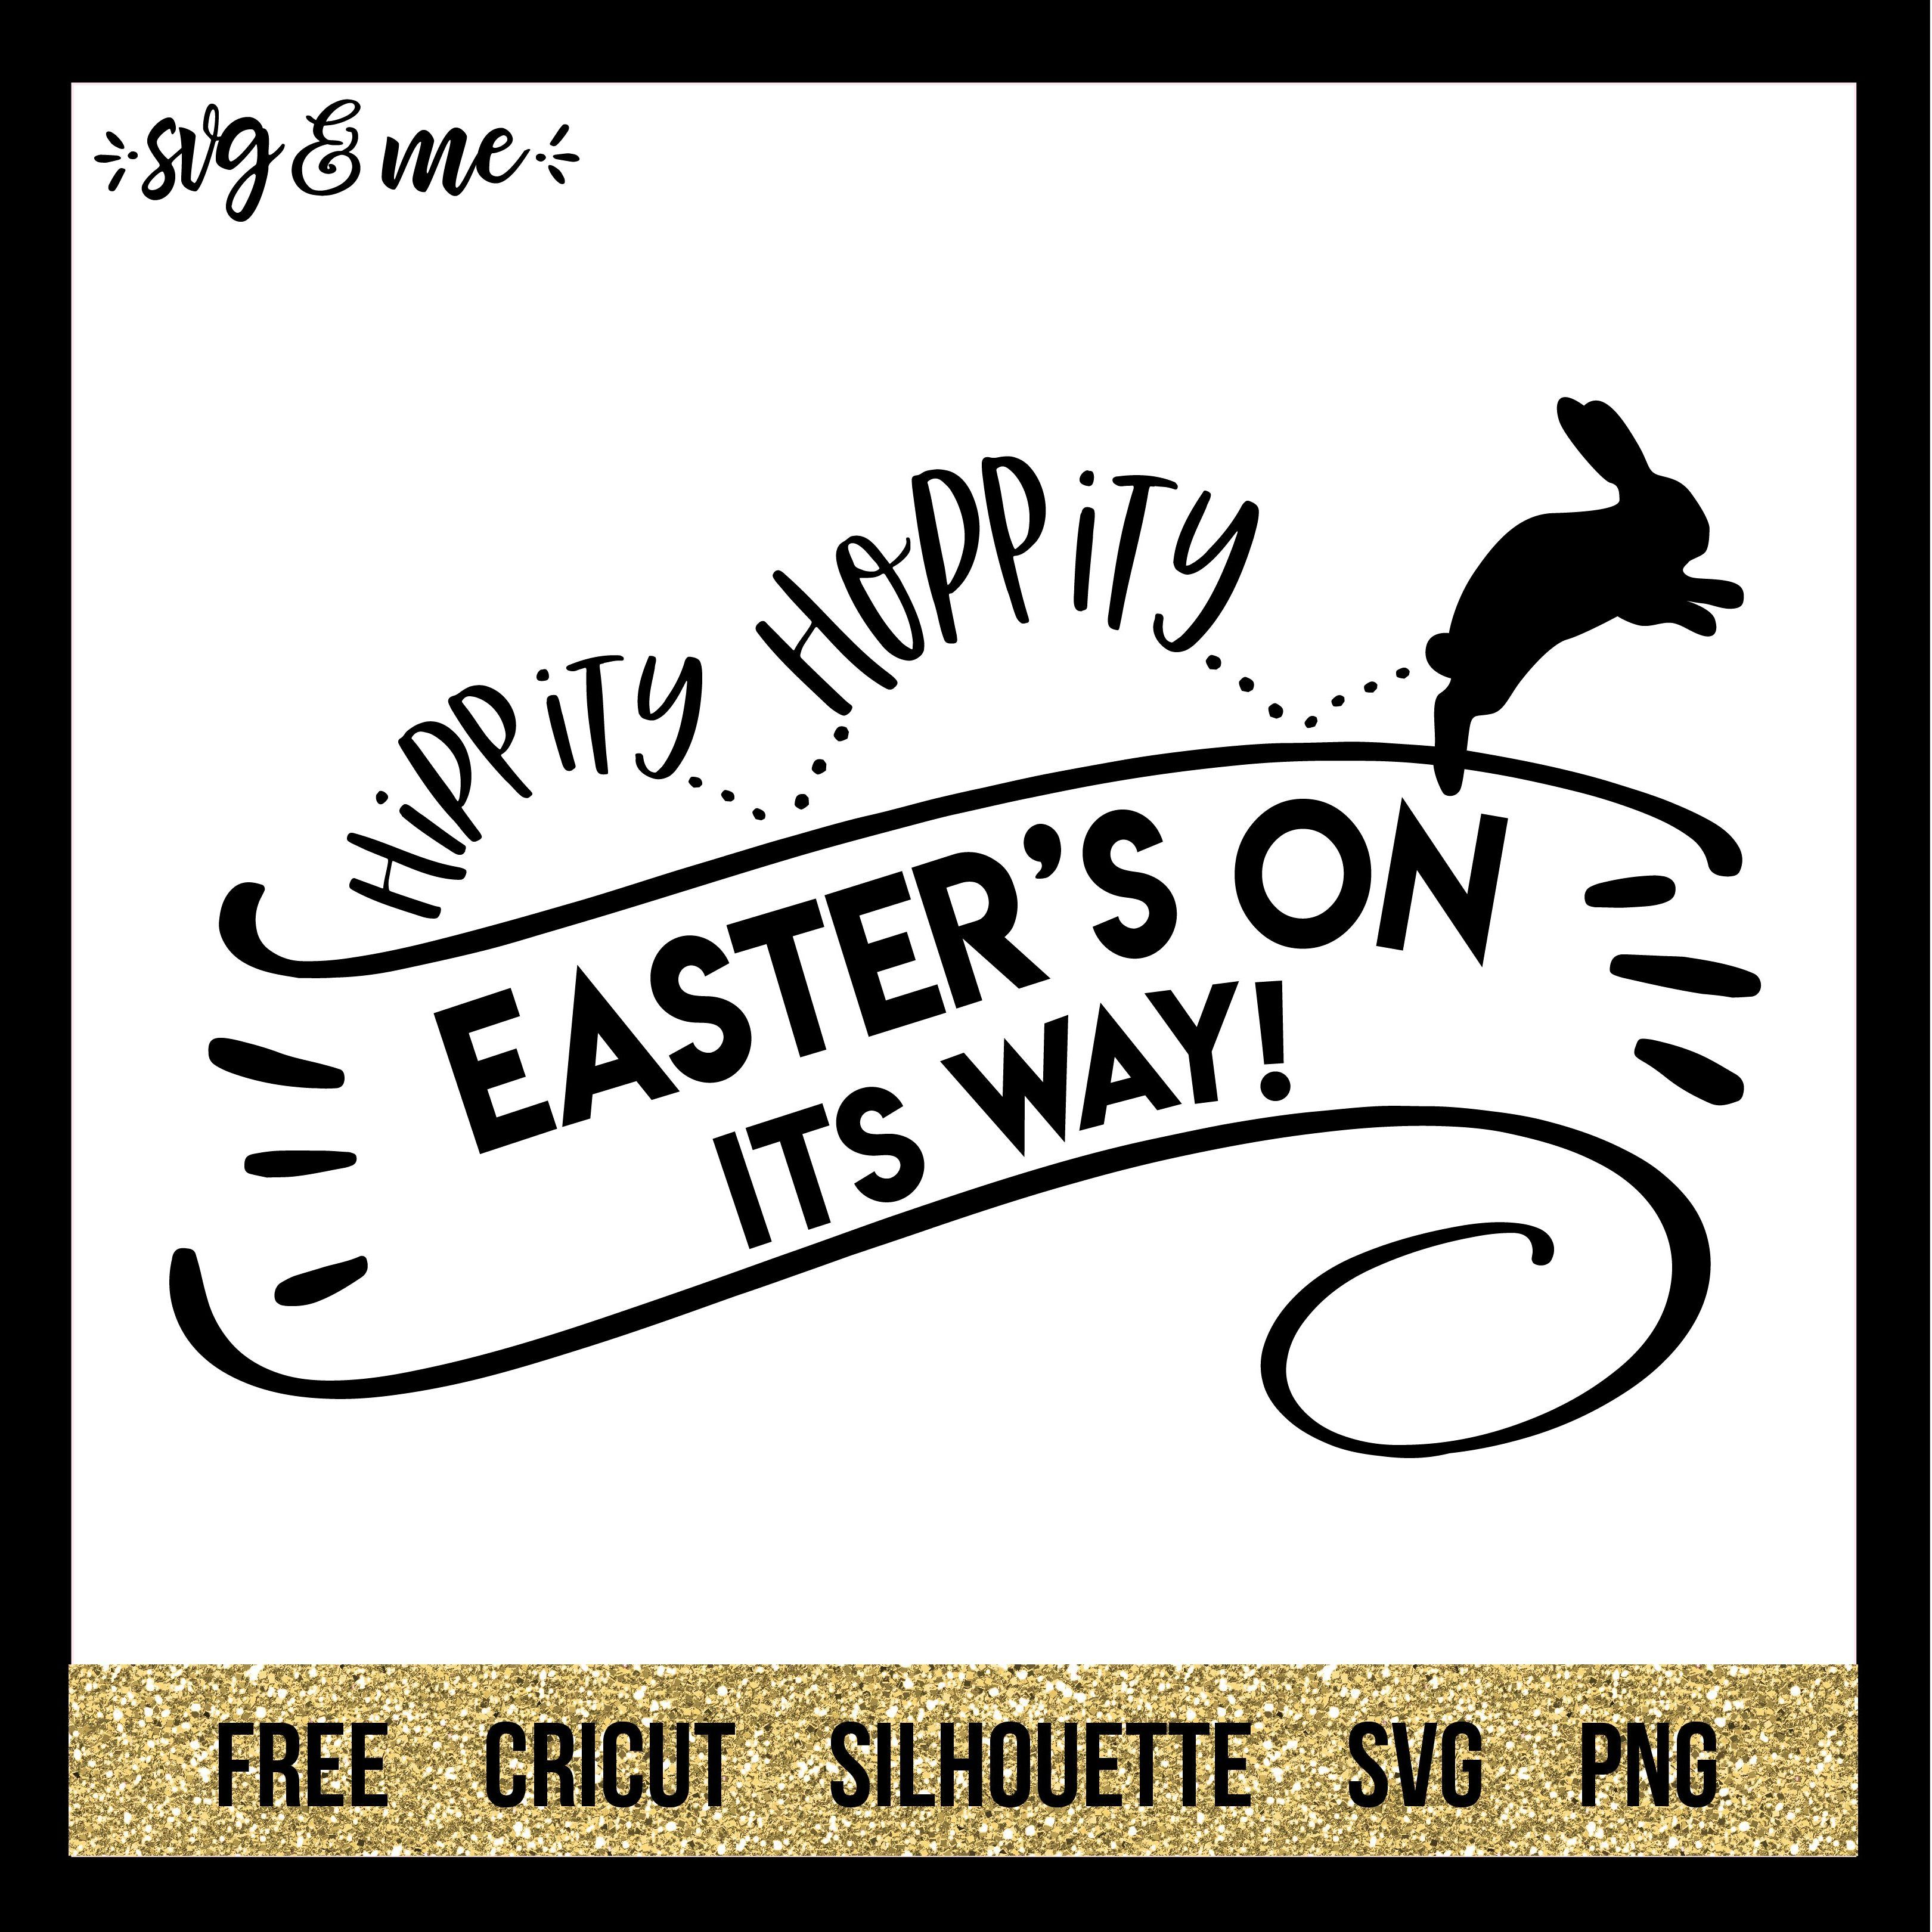 Download Easter's on its Way (With images) | Cricut free, Cricut ...